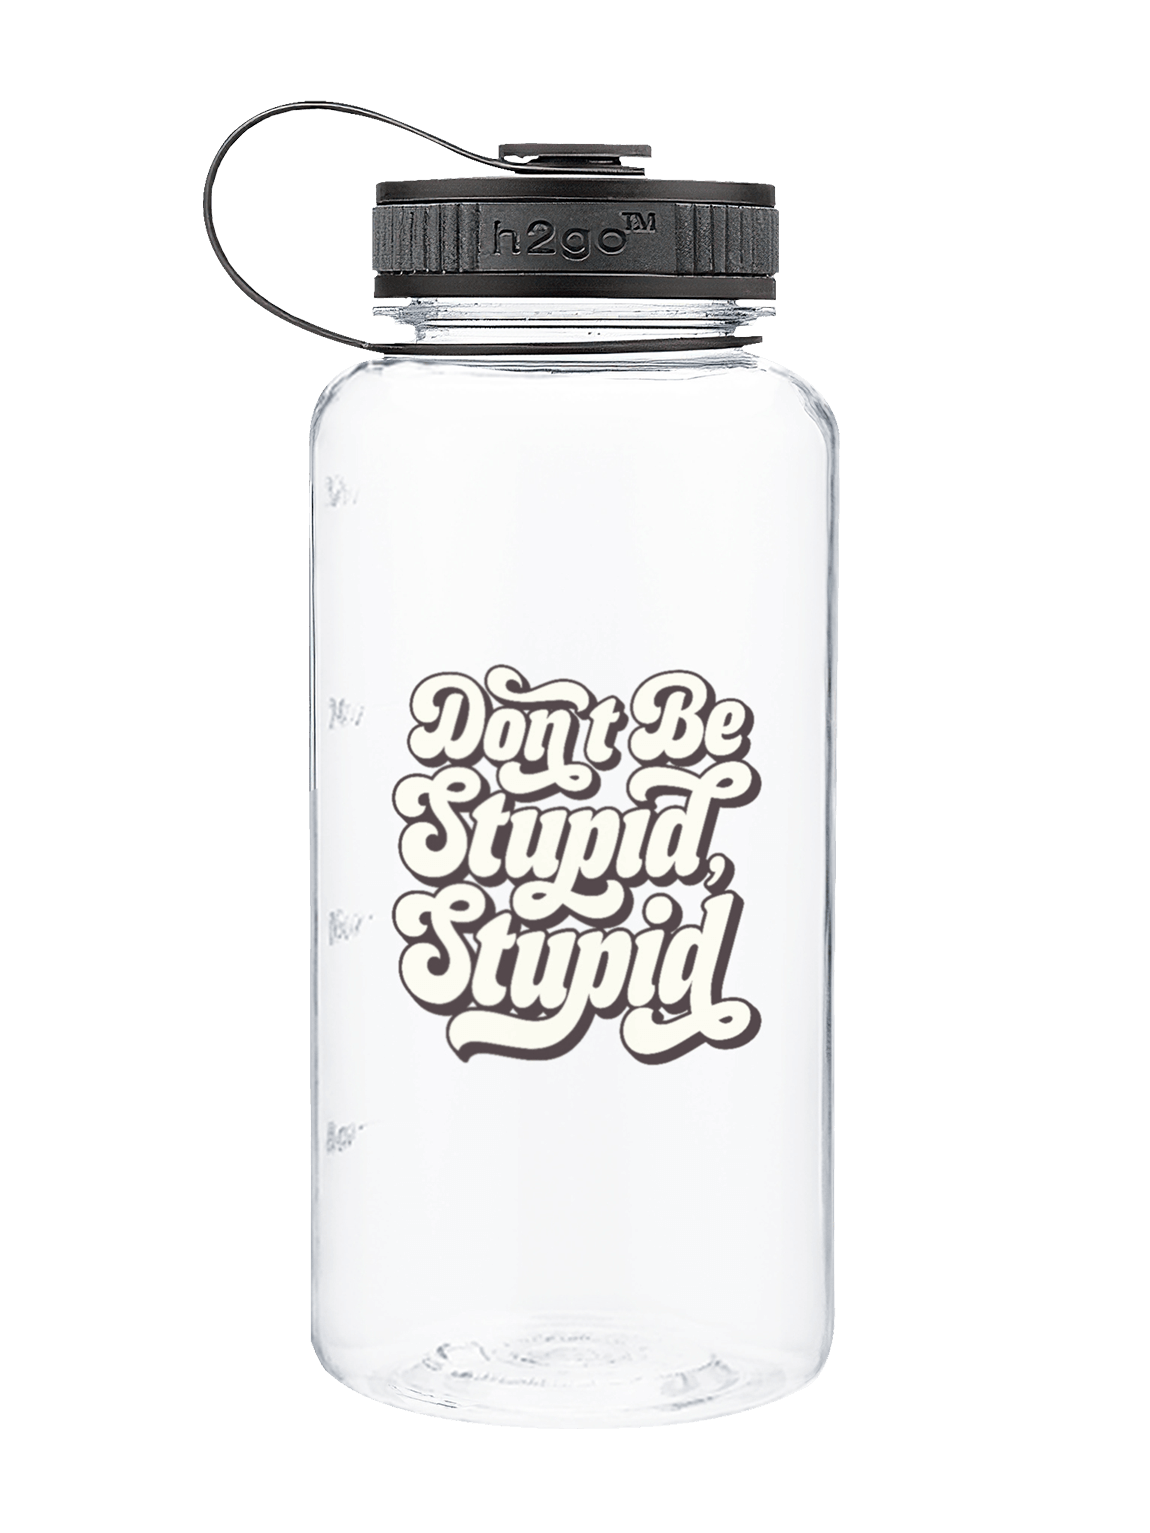 DON'T BE STUPID, STUPID 34OZ WATER BOTTLE product image (1)